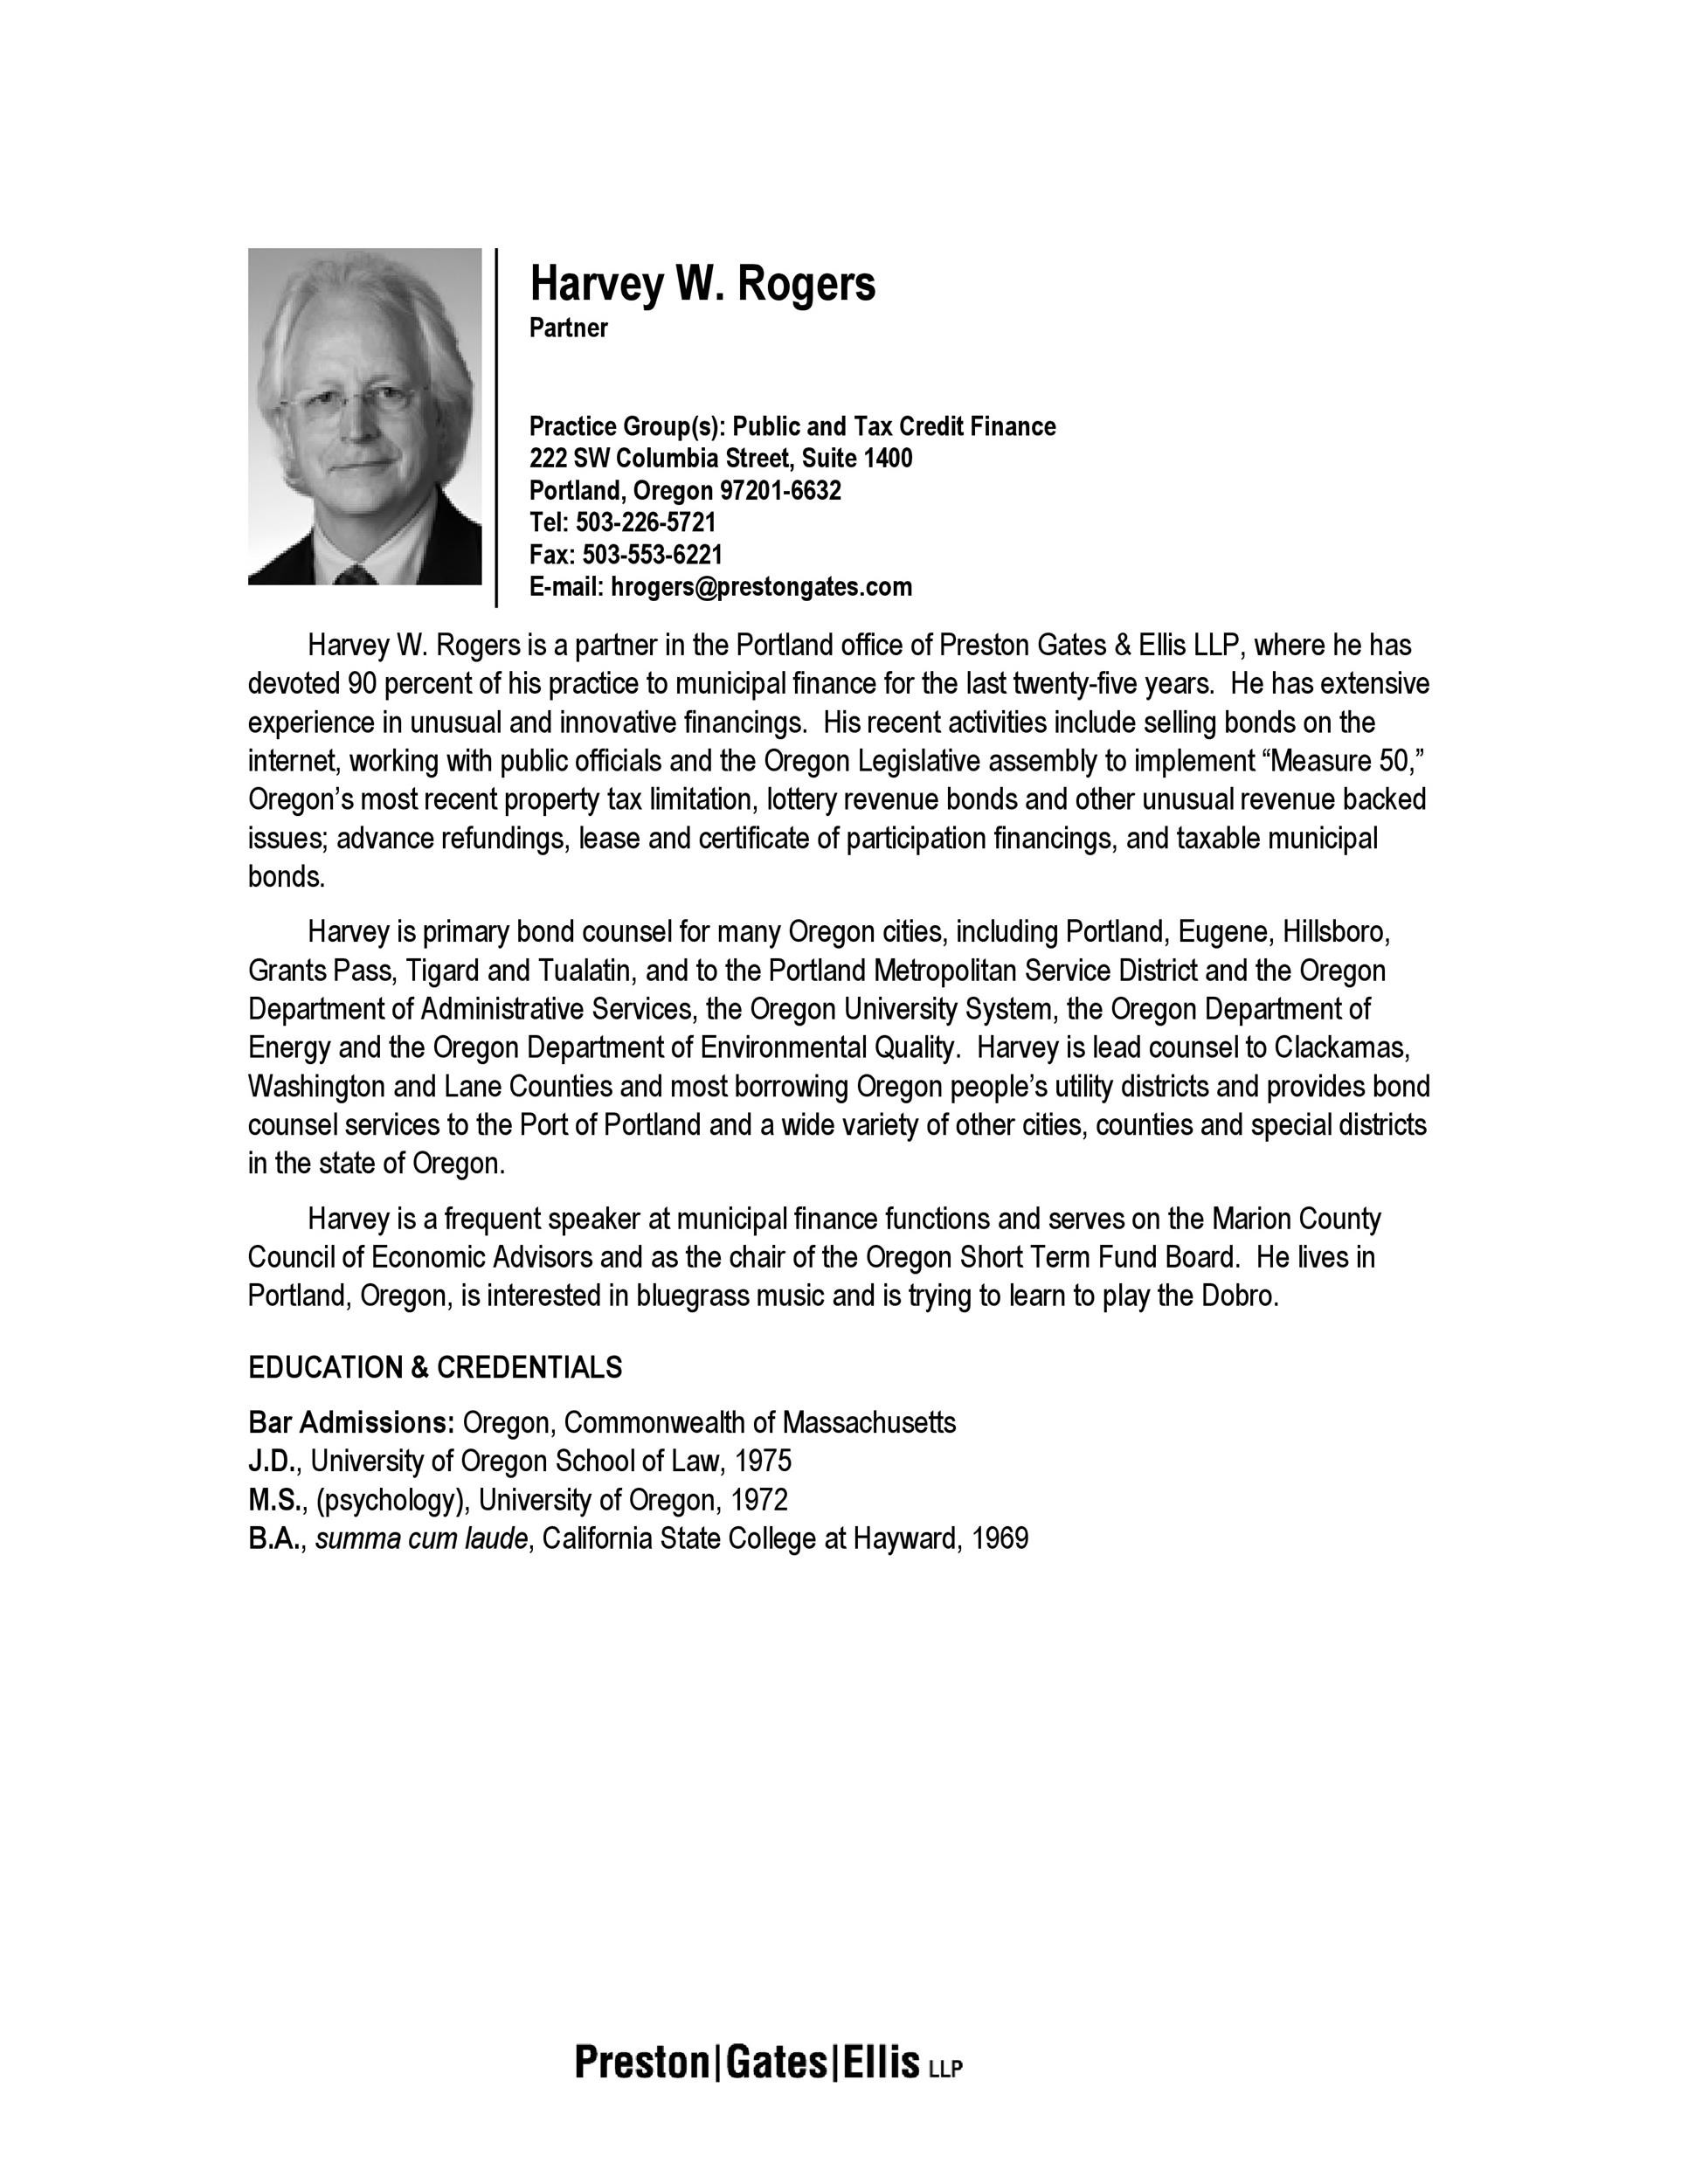 45 Biography Templates & Examples Personal Professional